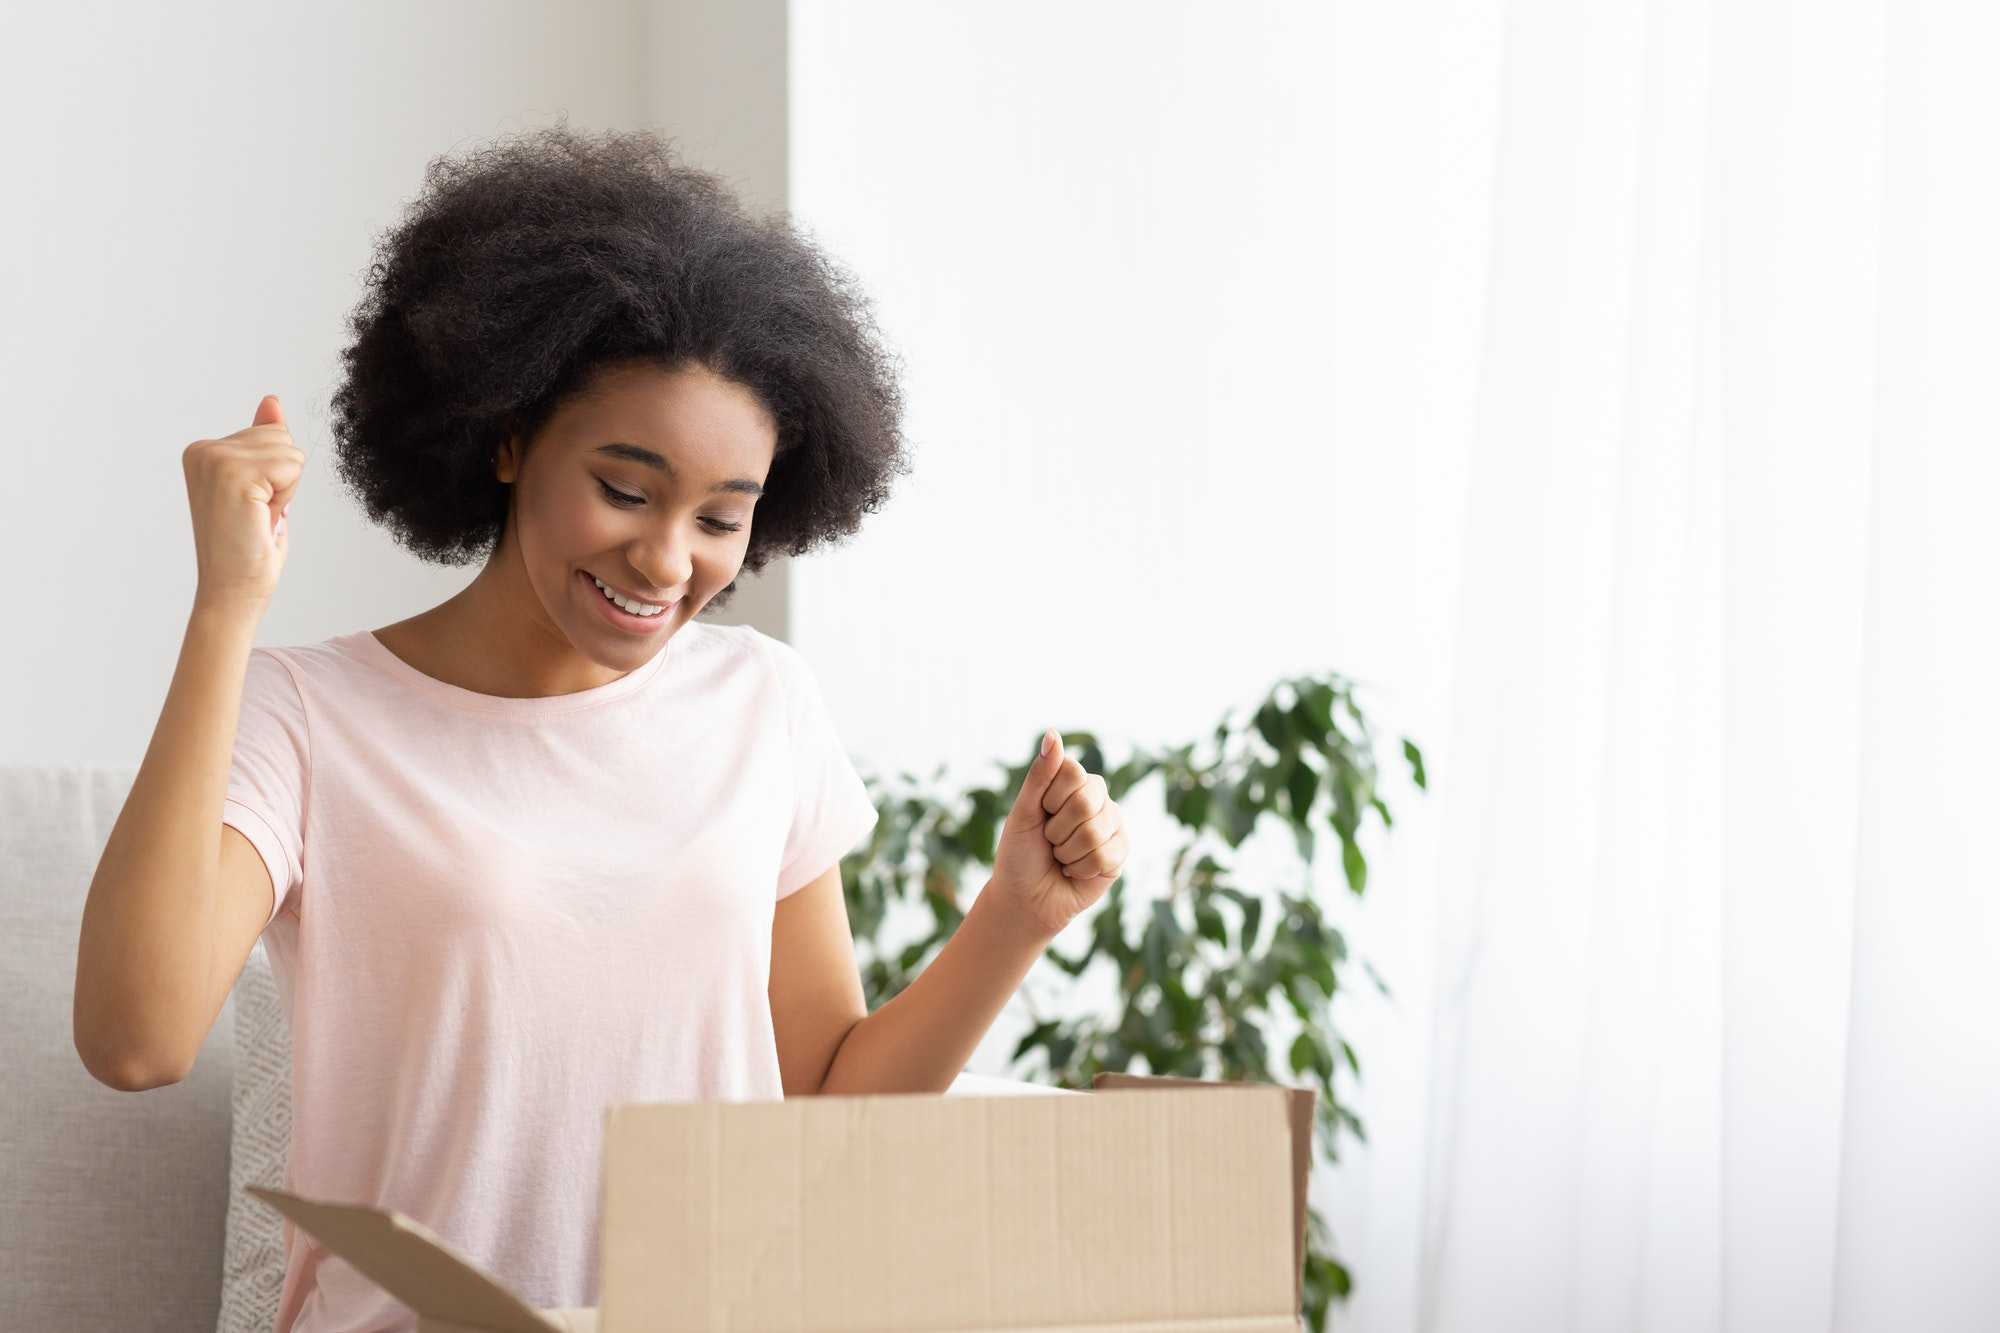 Customer is happy concept. Woman smiling receiving delivery